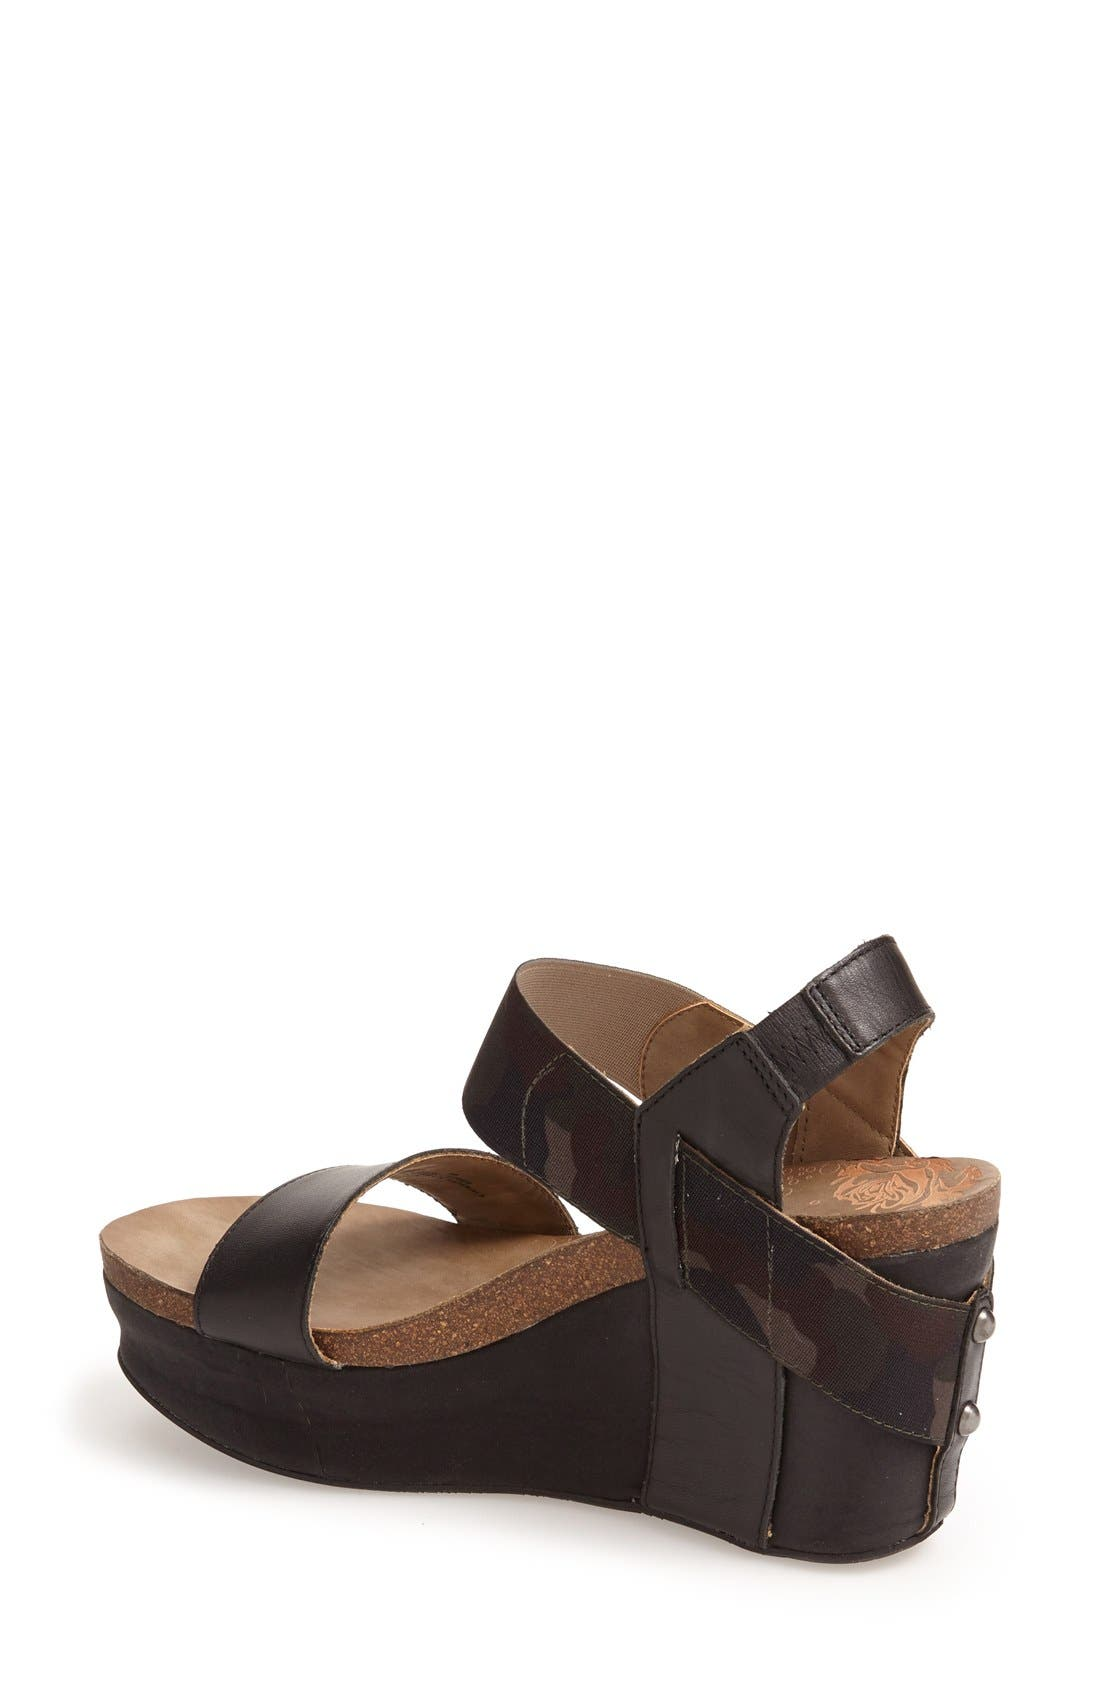 'Bushnell' Wedge Sandal,                             Alternate thumbnail 30, color,